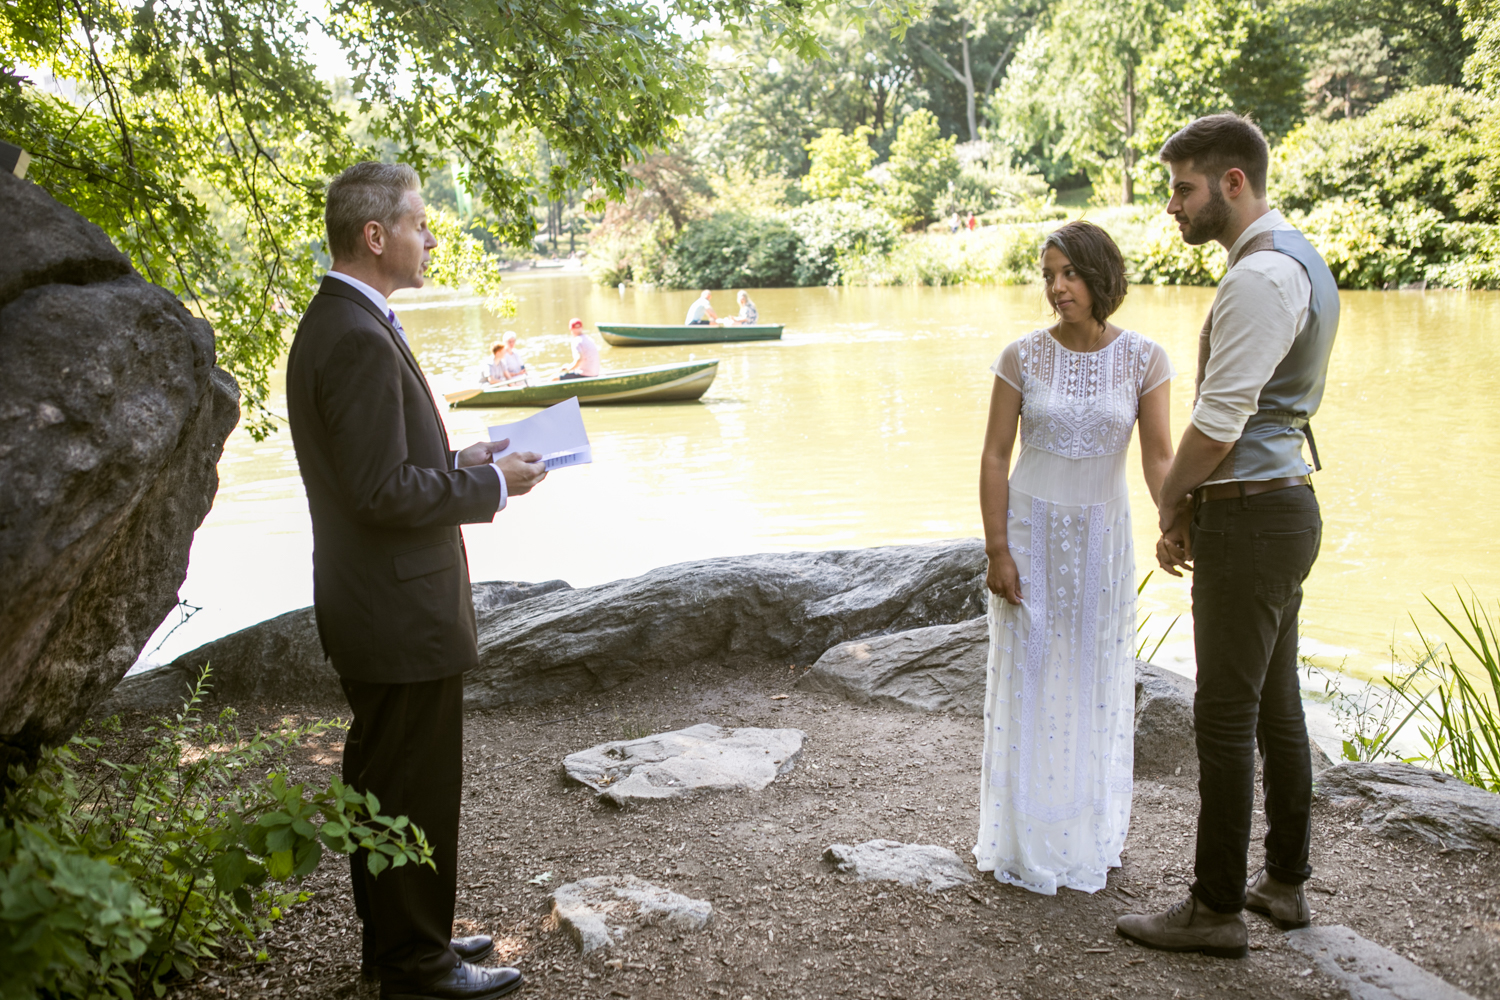 New York City bride and groom elope in Central Park.